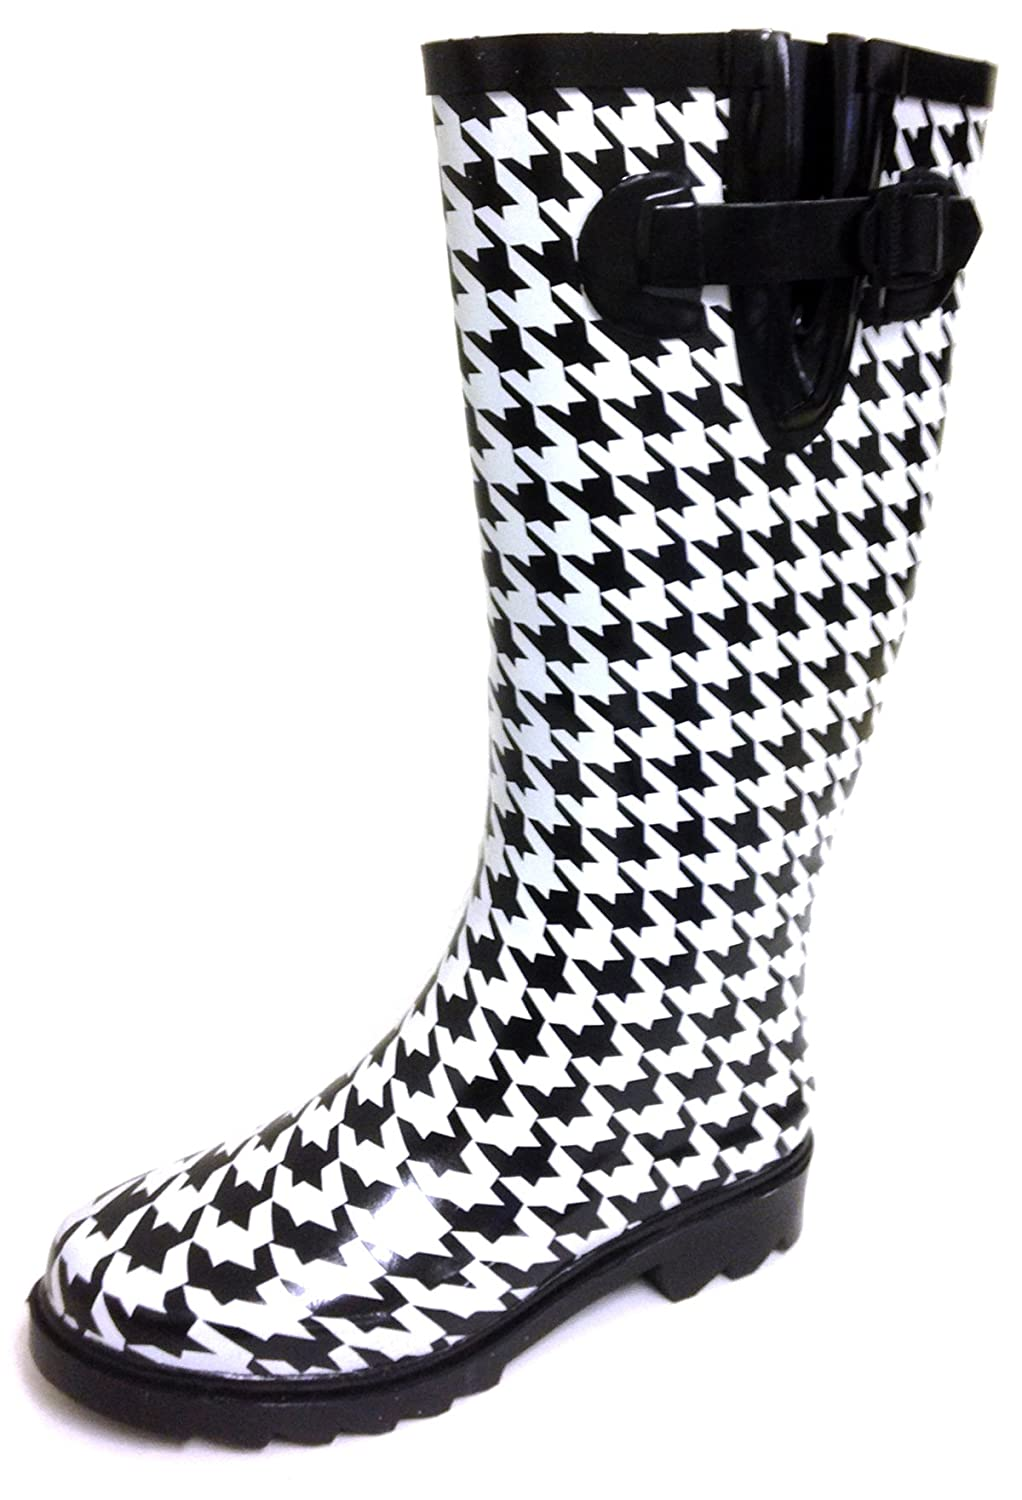 Black Houndstooth G4U Women's Rain Boots Multiple Styles color Mid Calf Wellies Buckle Fashion Rubber Knee High Snow shoes